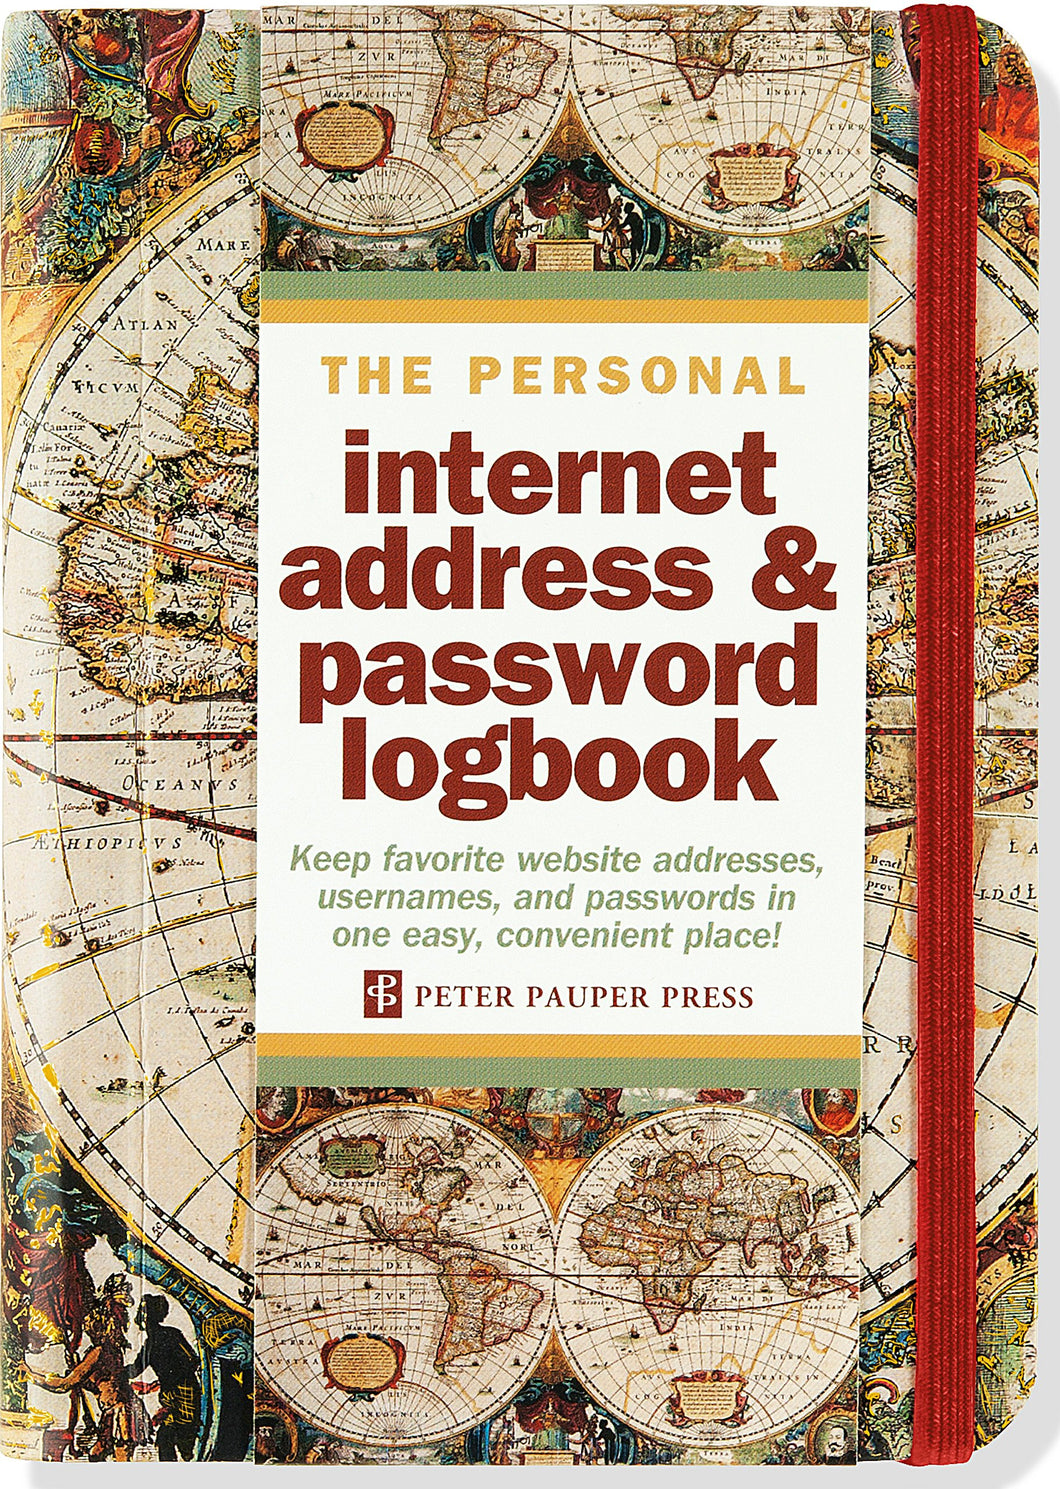 Peter Pauper Press Old World Internet Address and Password Logbook